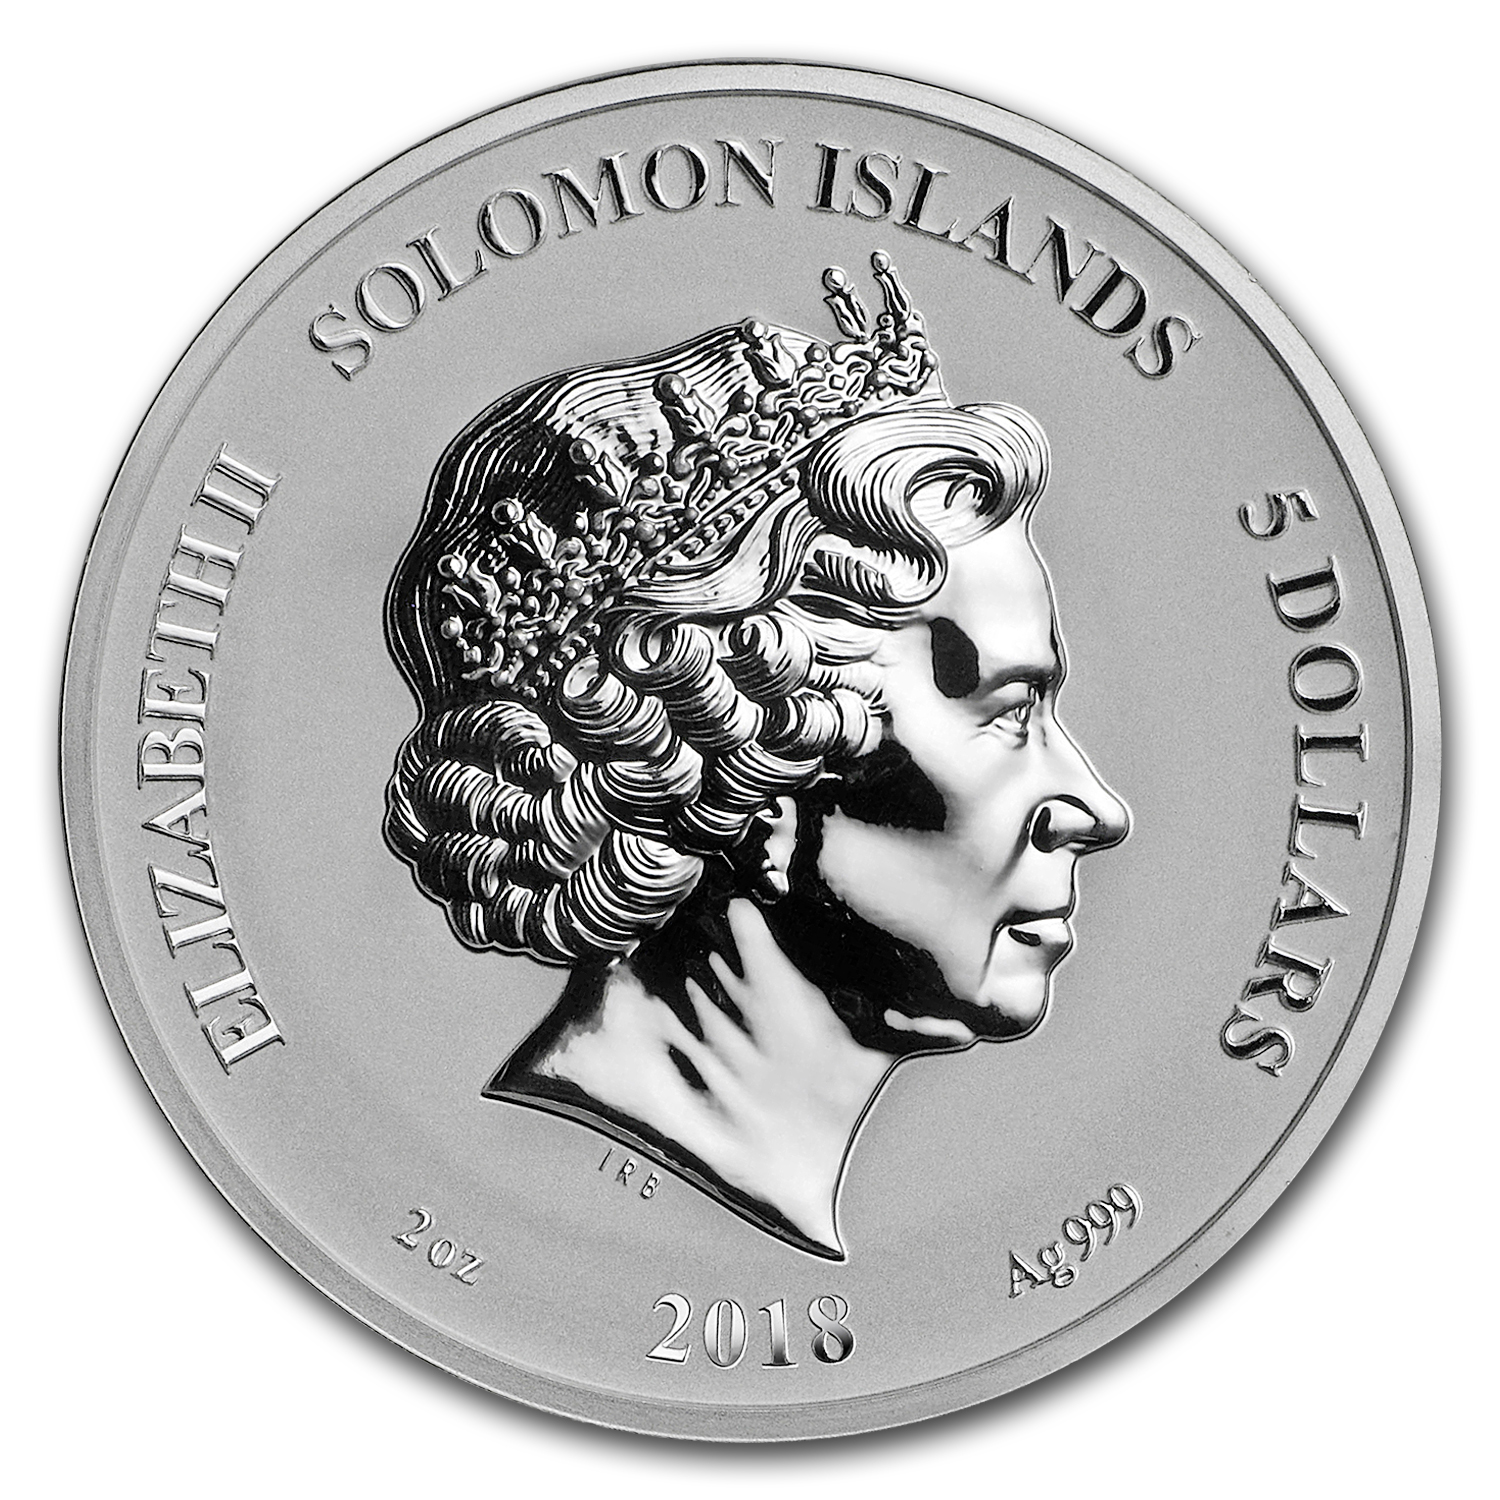 2018 Solomon Islands Legends /& Myths Series Elf 2 oz Silver Reverse Proof Coin